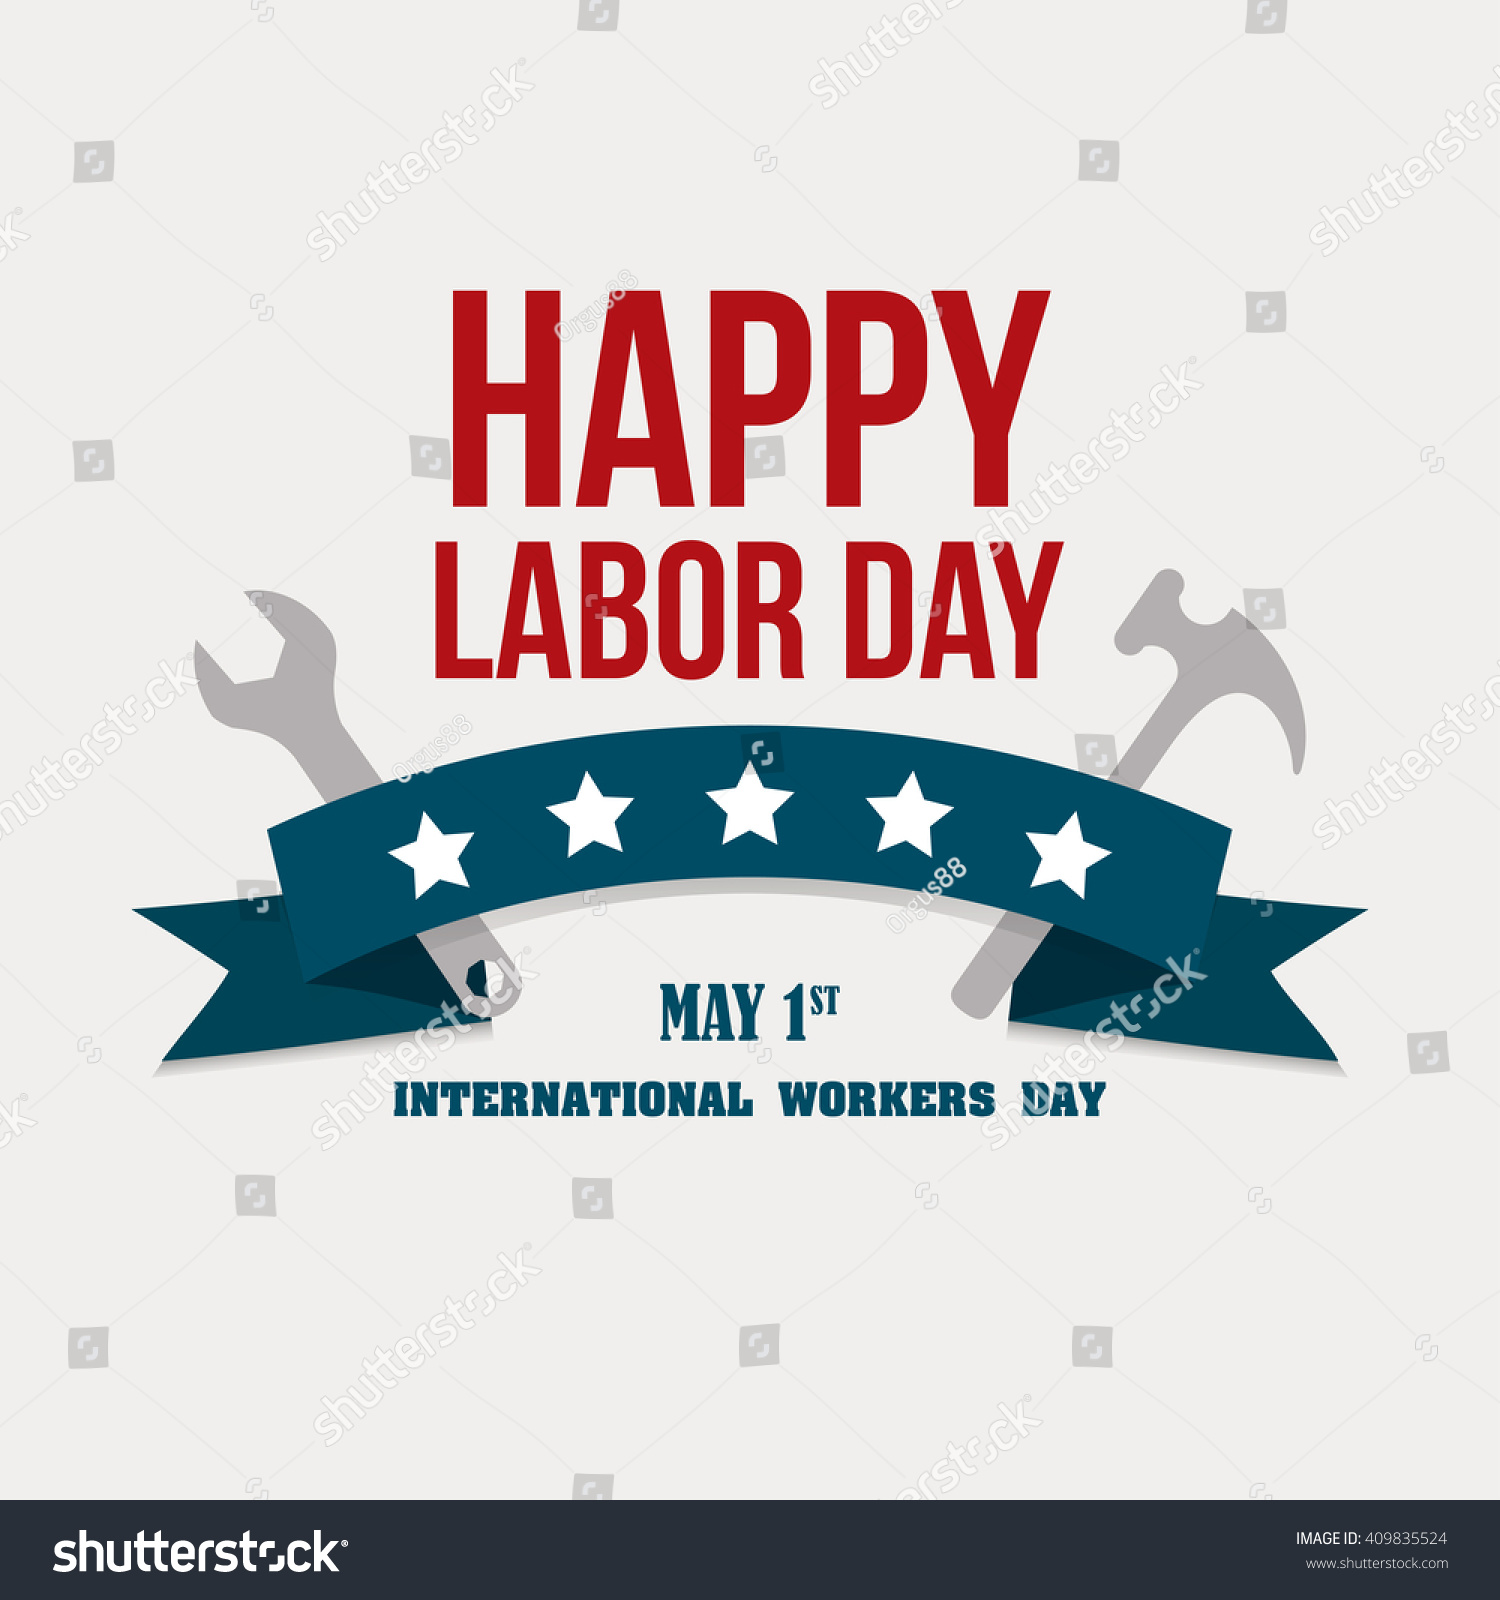 Happy Labor Day Greetings Cards Labor Stock Vector Royalty Free